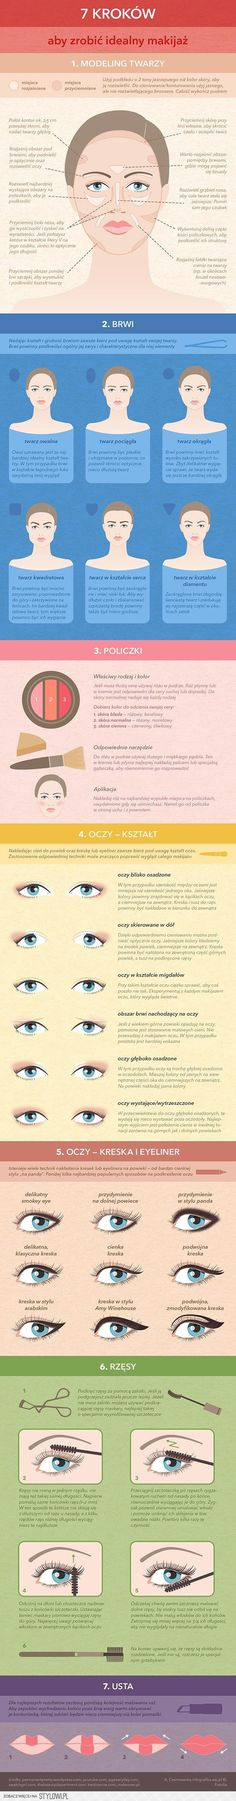 Make-up in a nutshell. Makeup Inspo, Makeup Inspiration, Beauty Makeup, Eye Makeup, Hair Makeup, Hair Beauty, Make Up Tricks, How To Make, Lipstick Tutorial